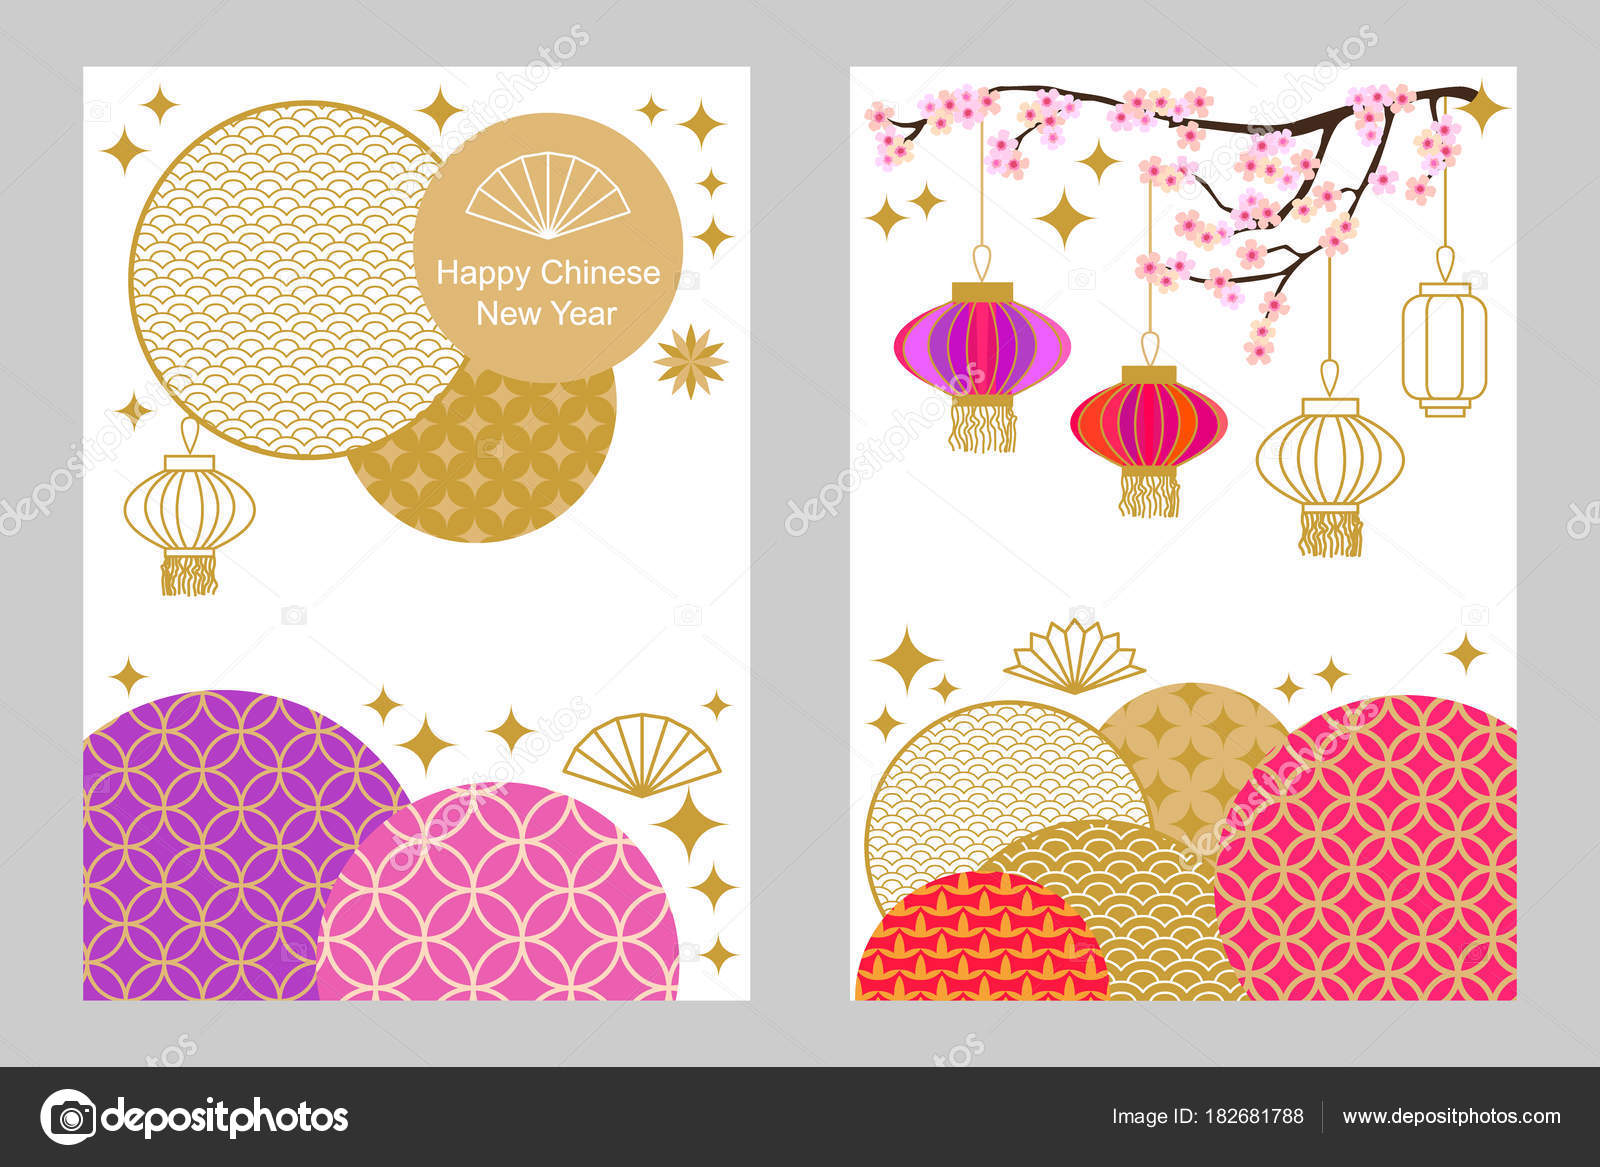 Happy Chinese New Year cards set. Colorful abstract ornate circles ...